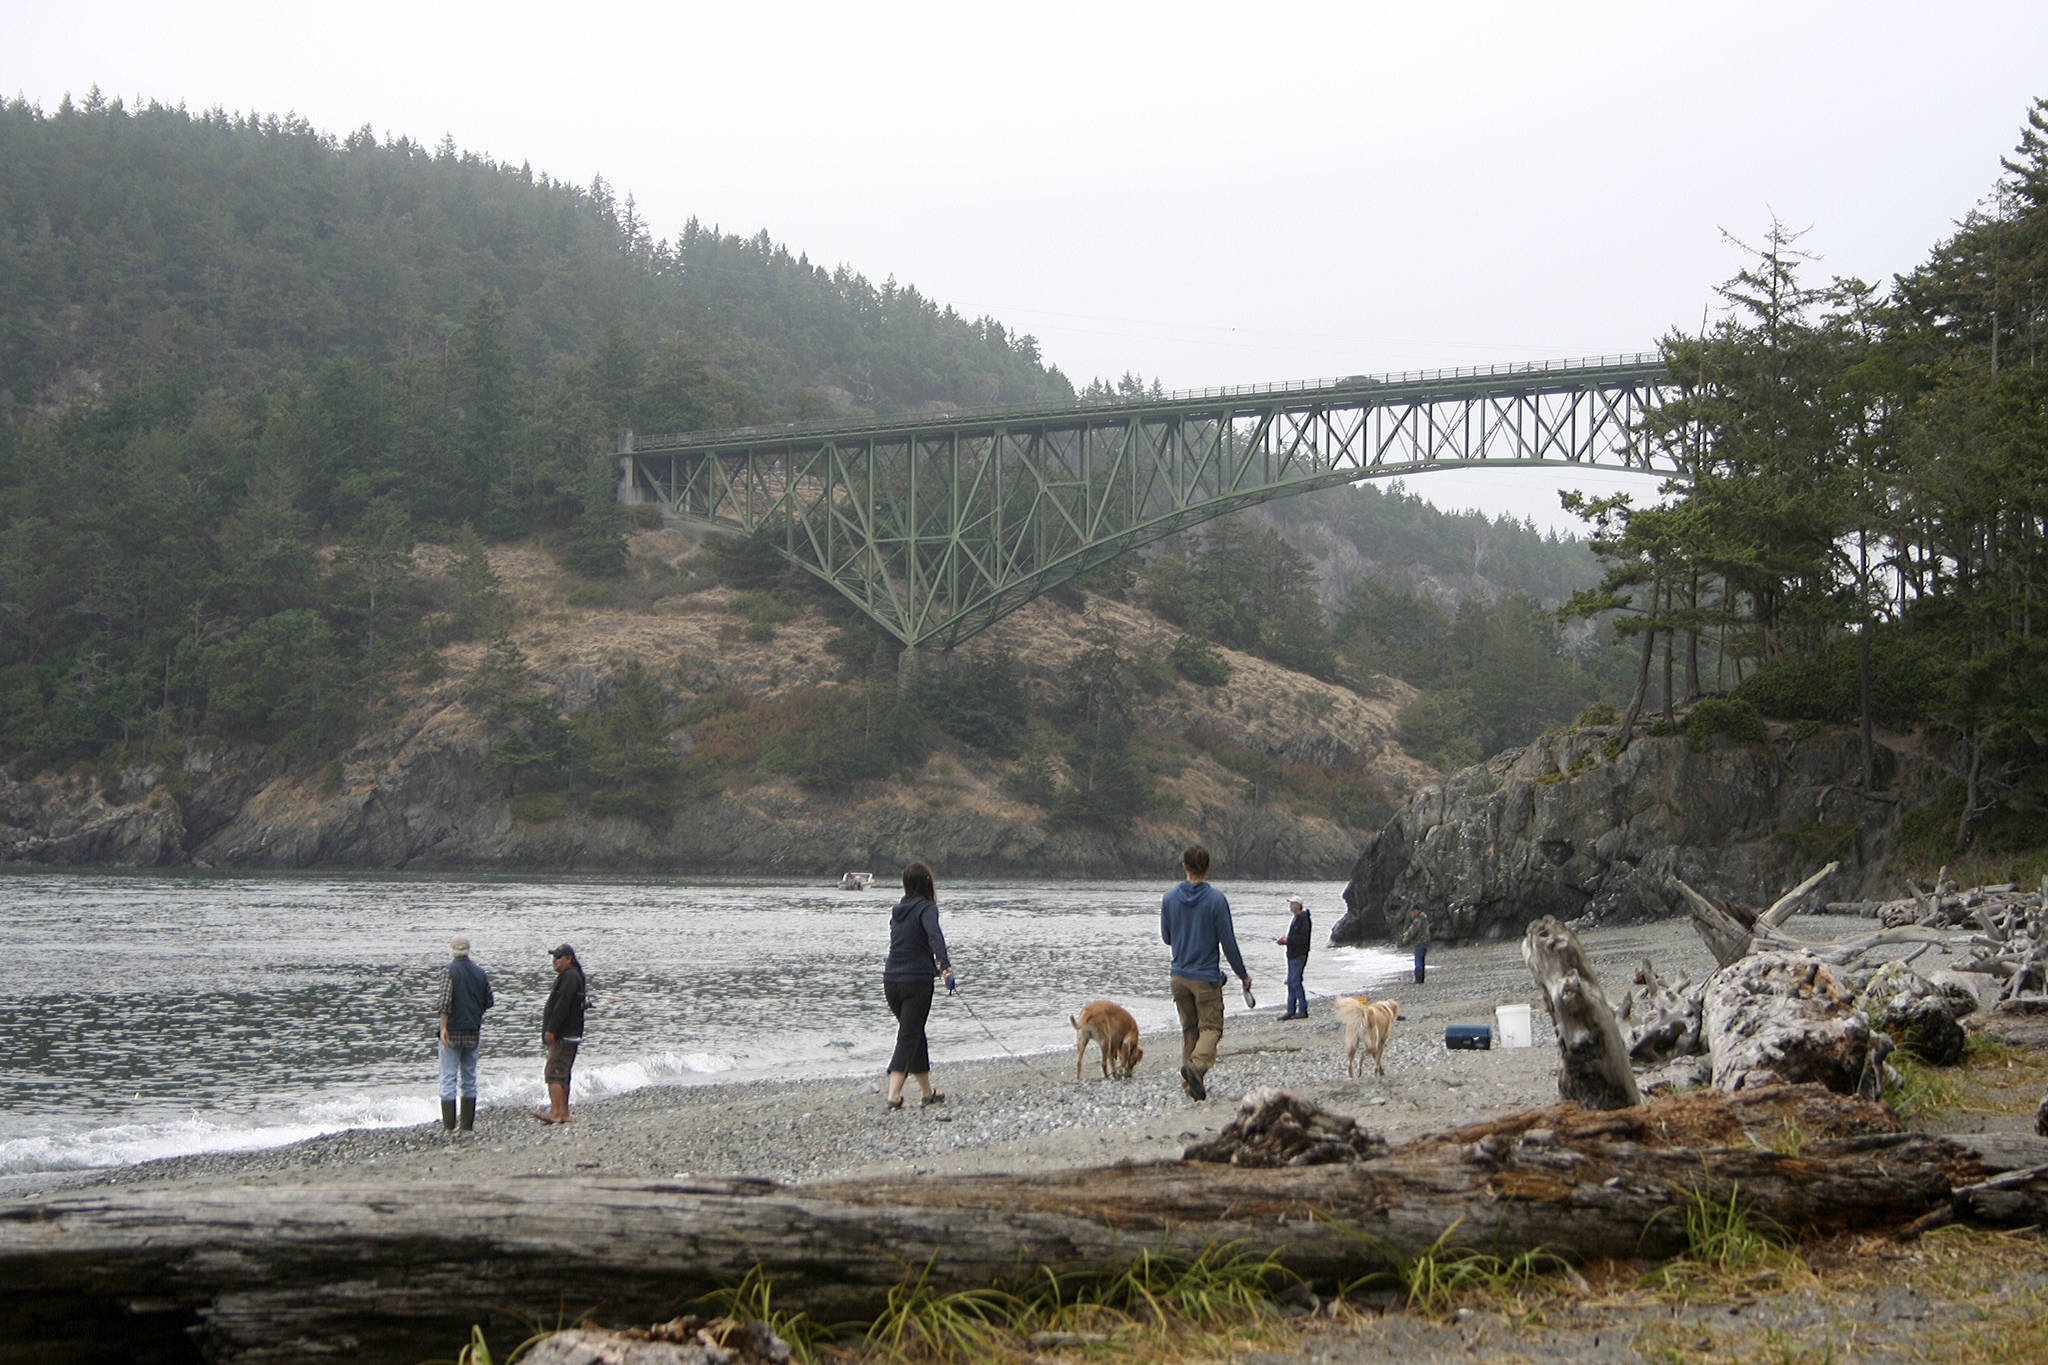 Deception Pass State Park. Deception Pass is a strait separating Whidbey Island from Fidalgo Island. File photo